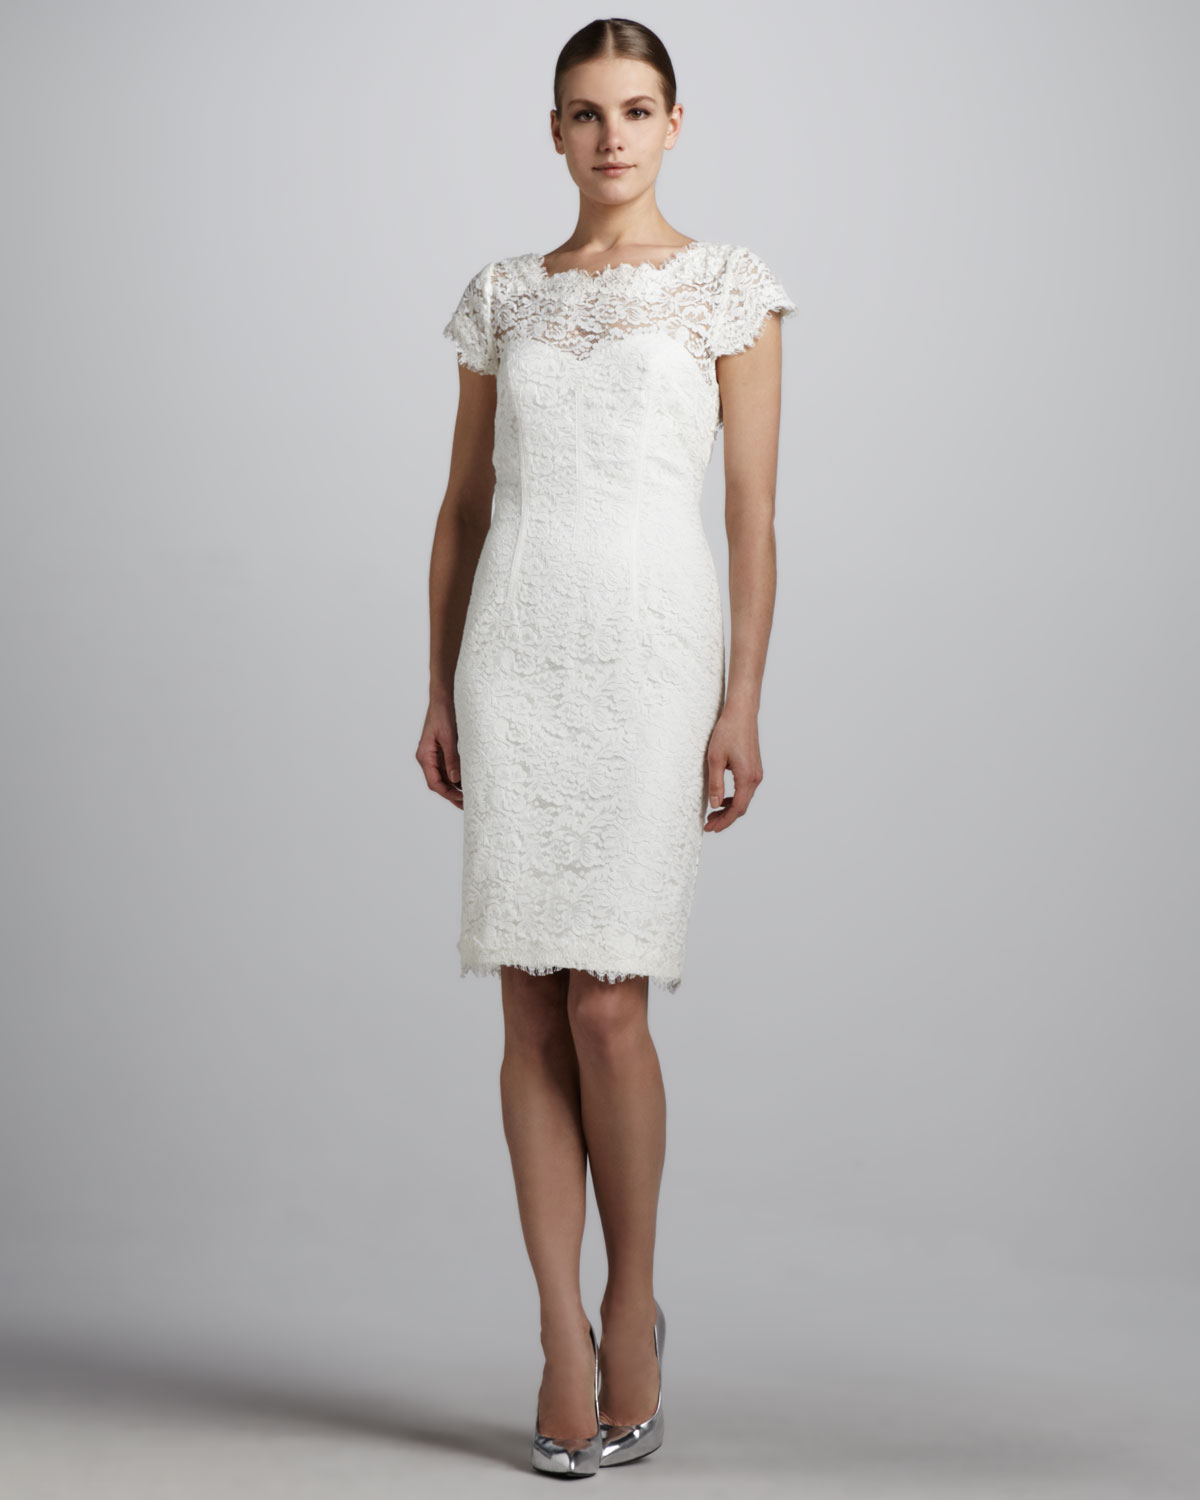 2019 year for women- Back open lace cocktail dress